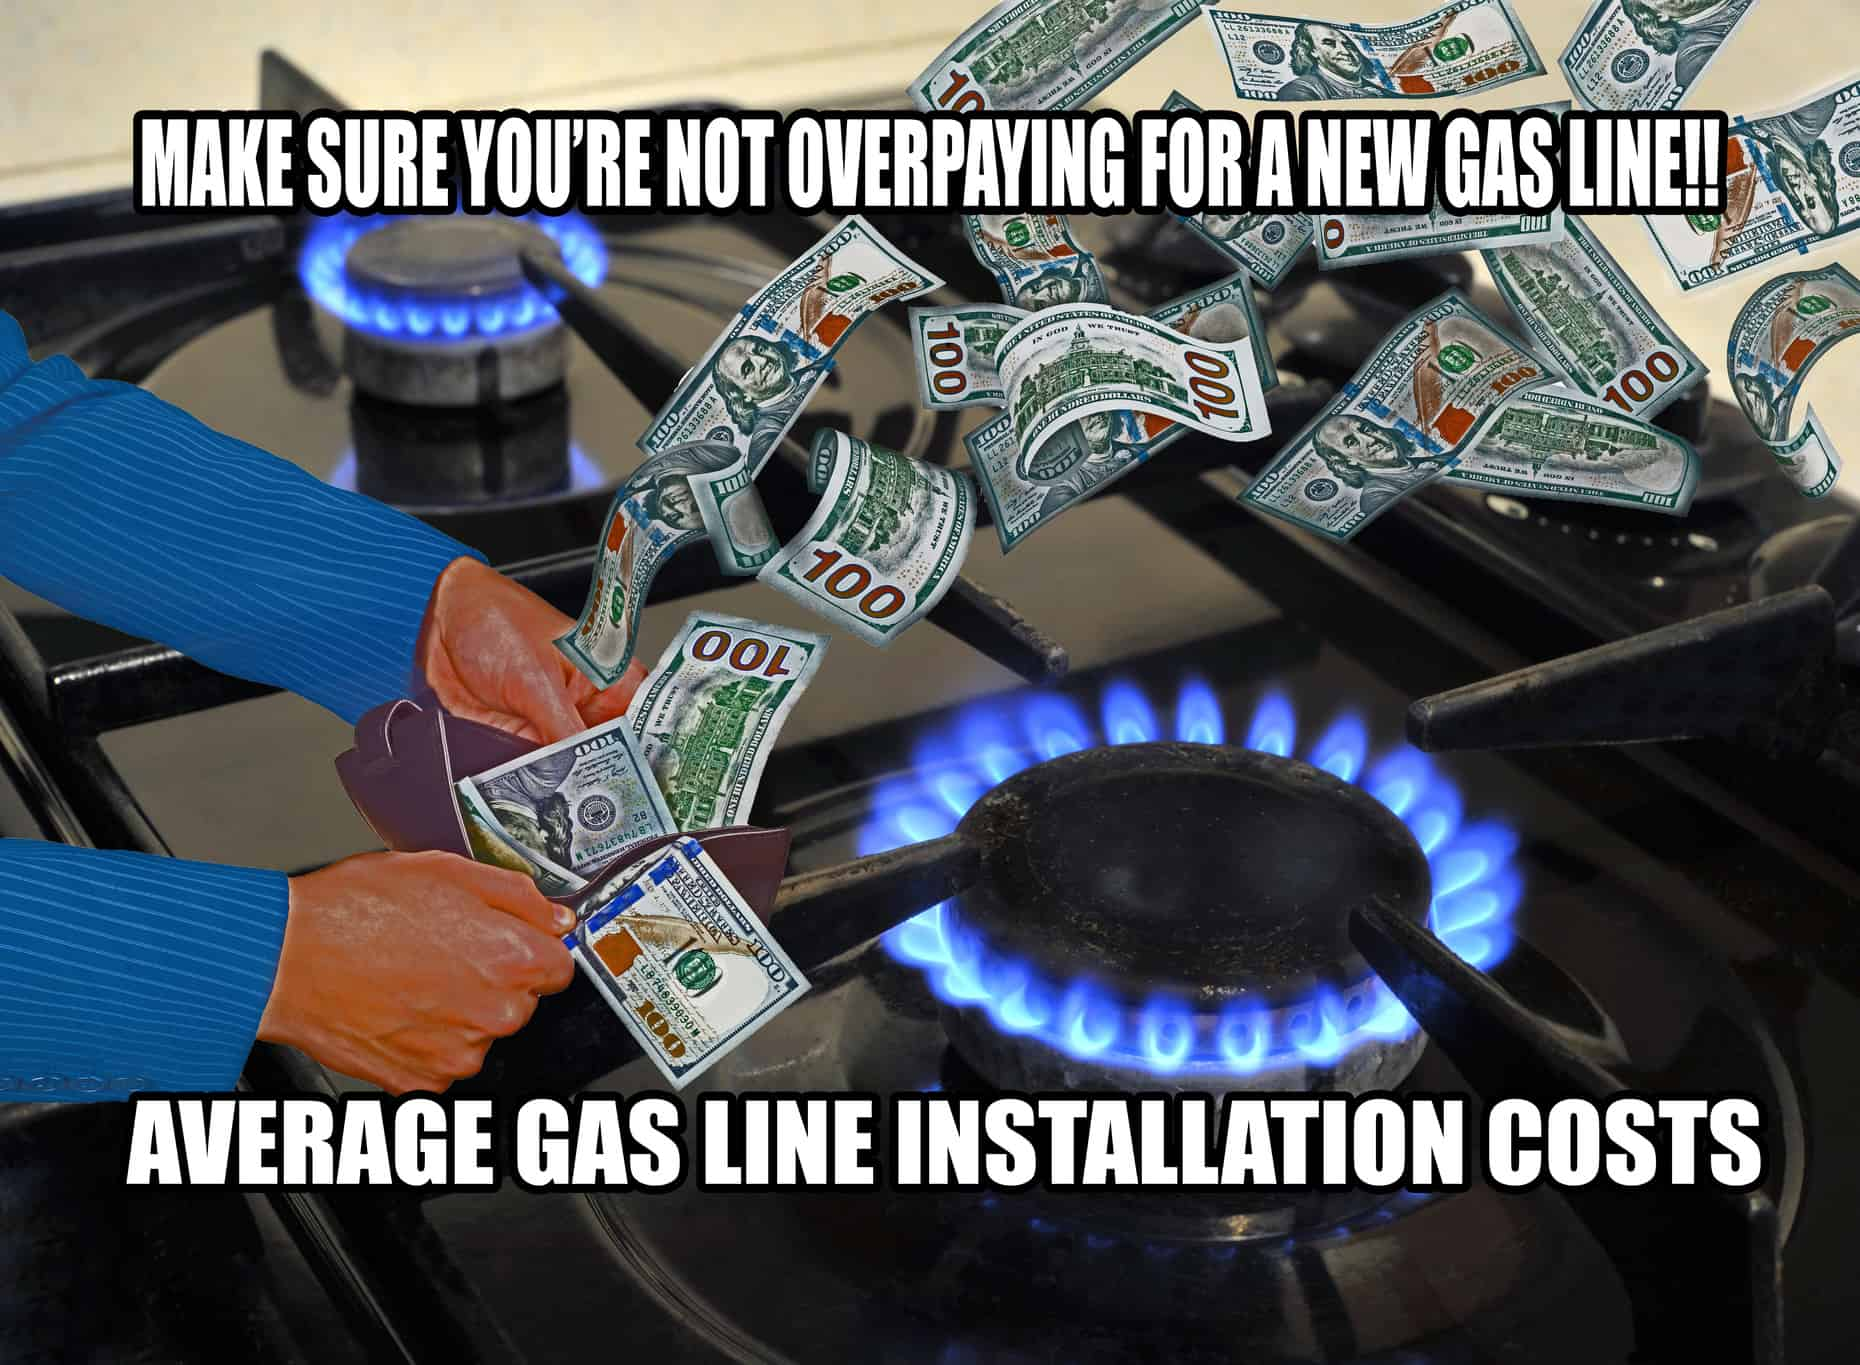 Average costs to have a new gas line installed